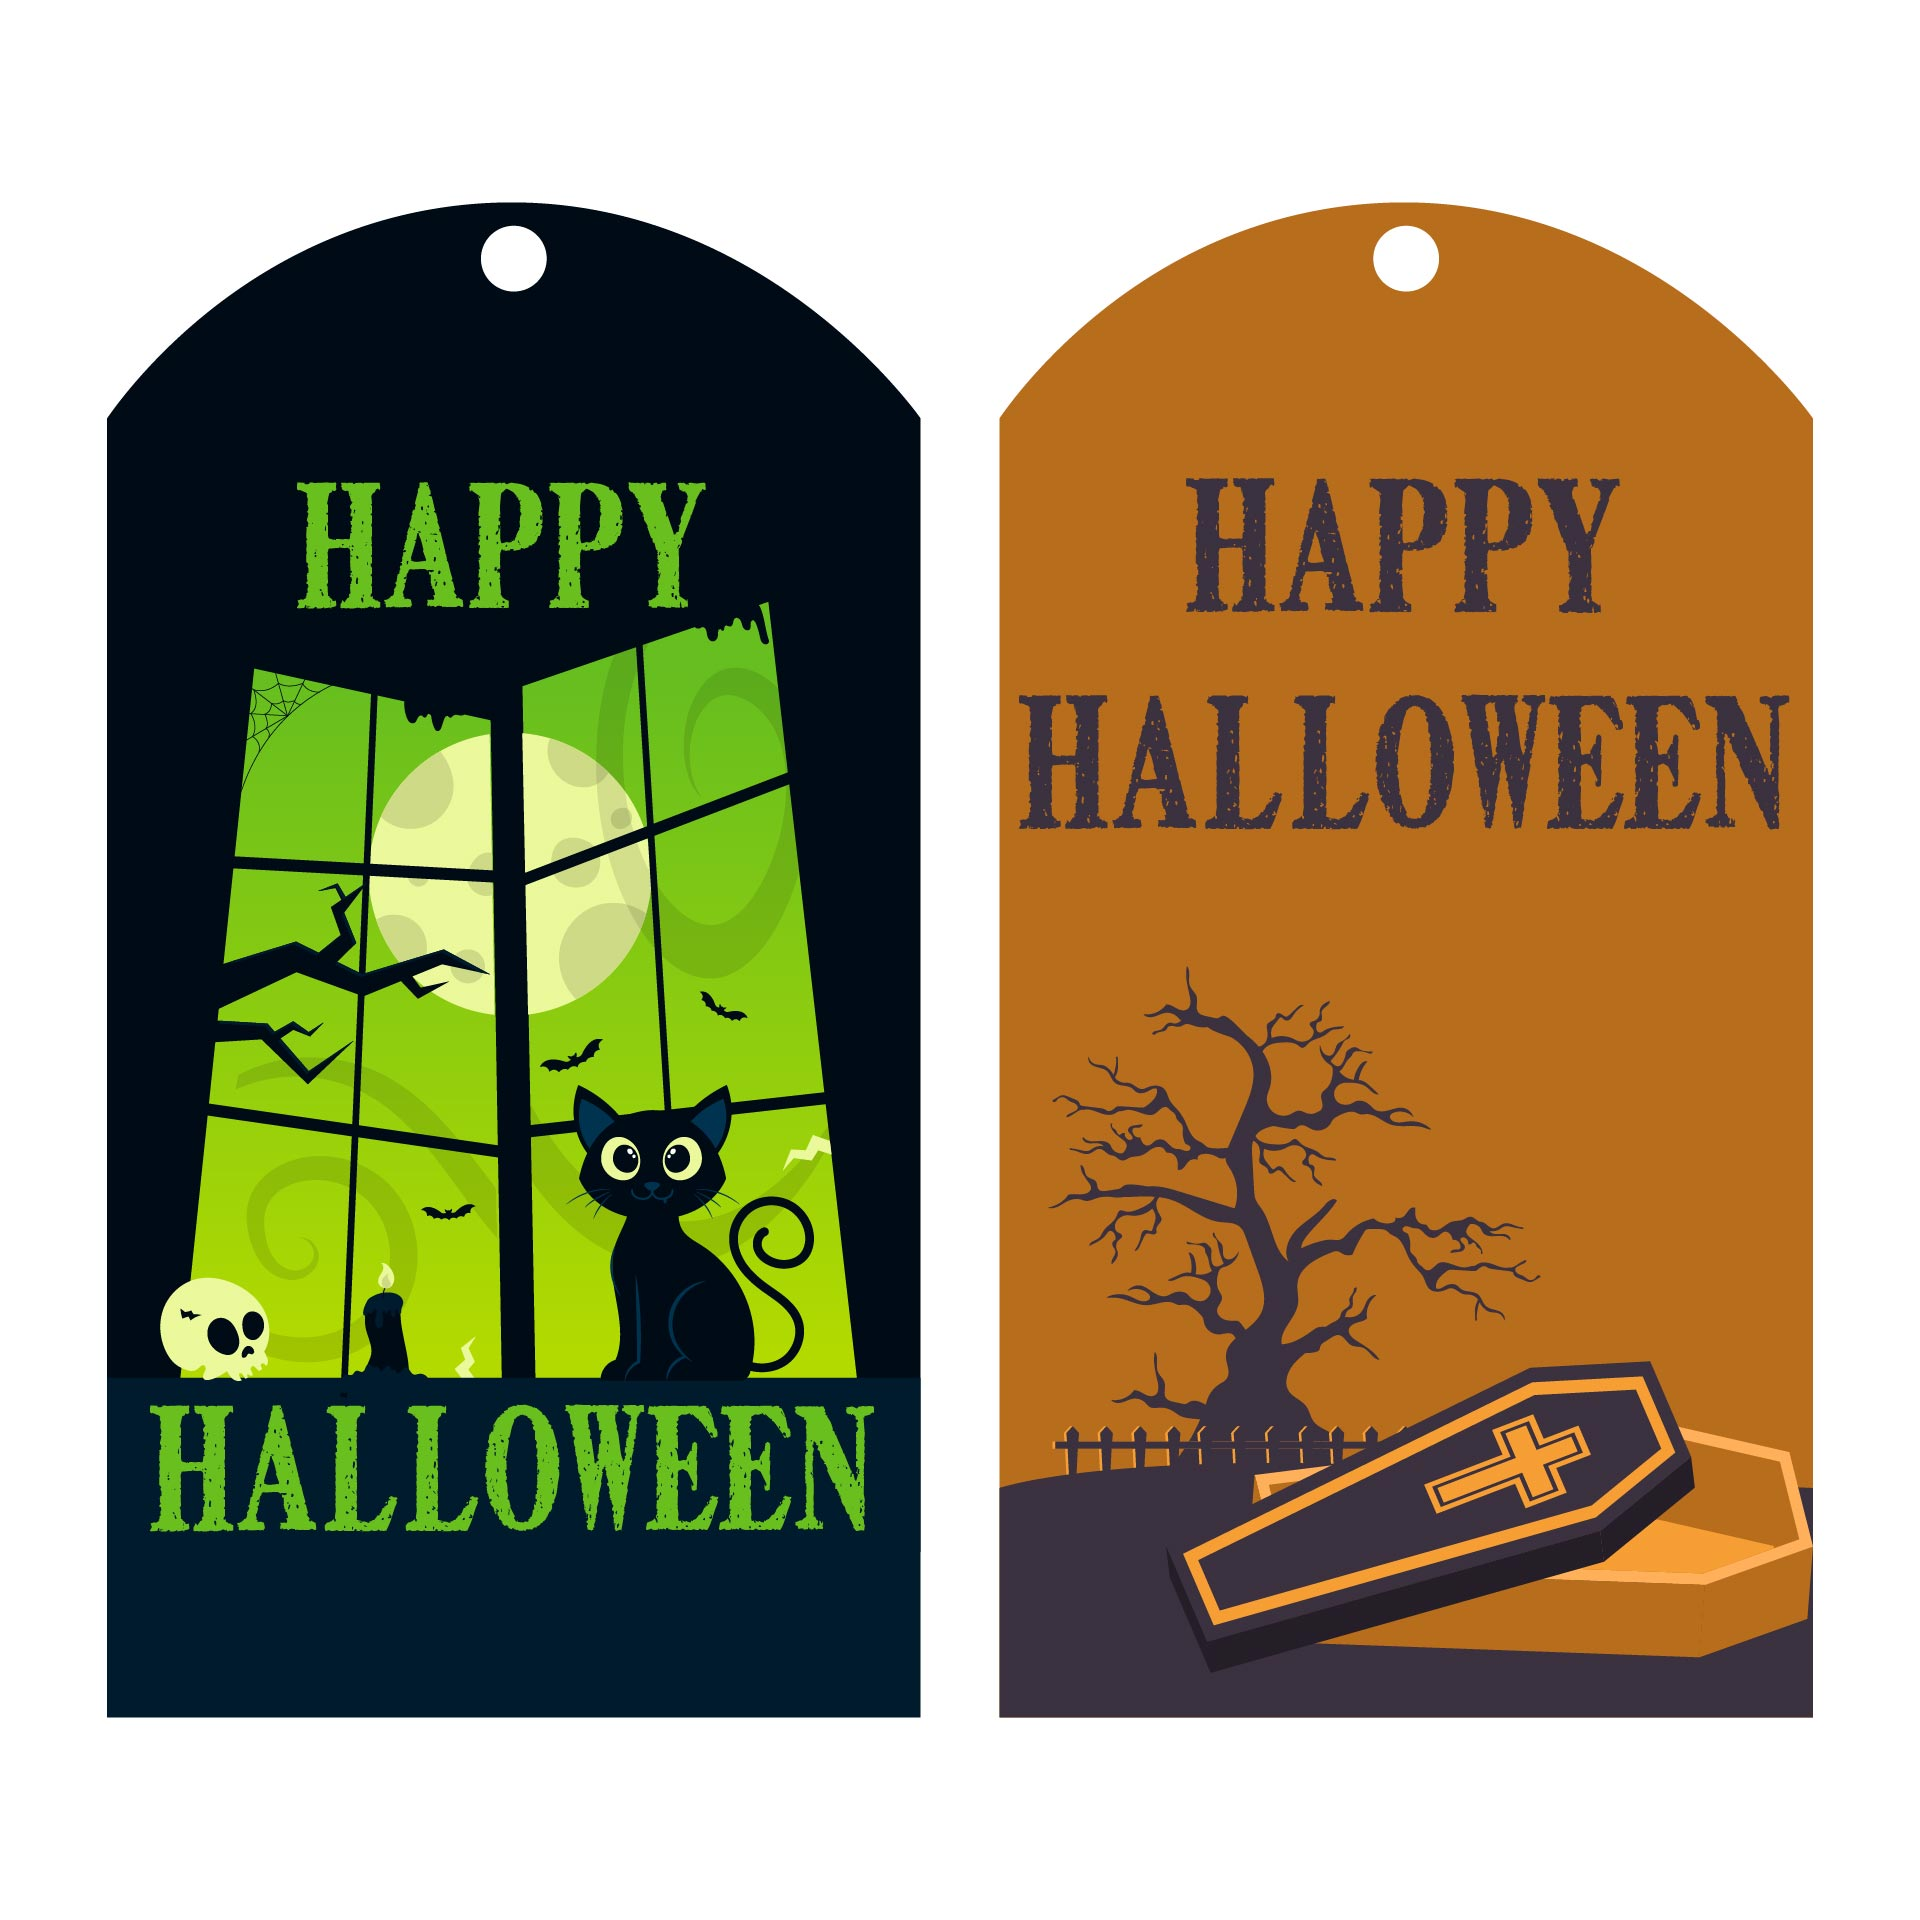 6 Images of Happy Halloween Printable Labels